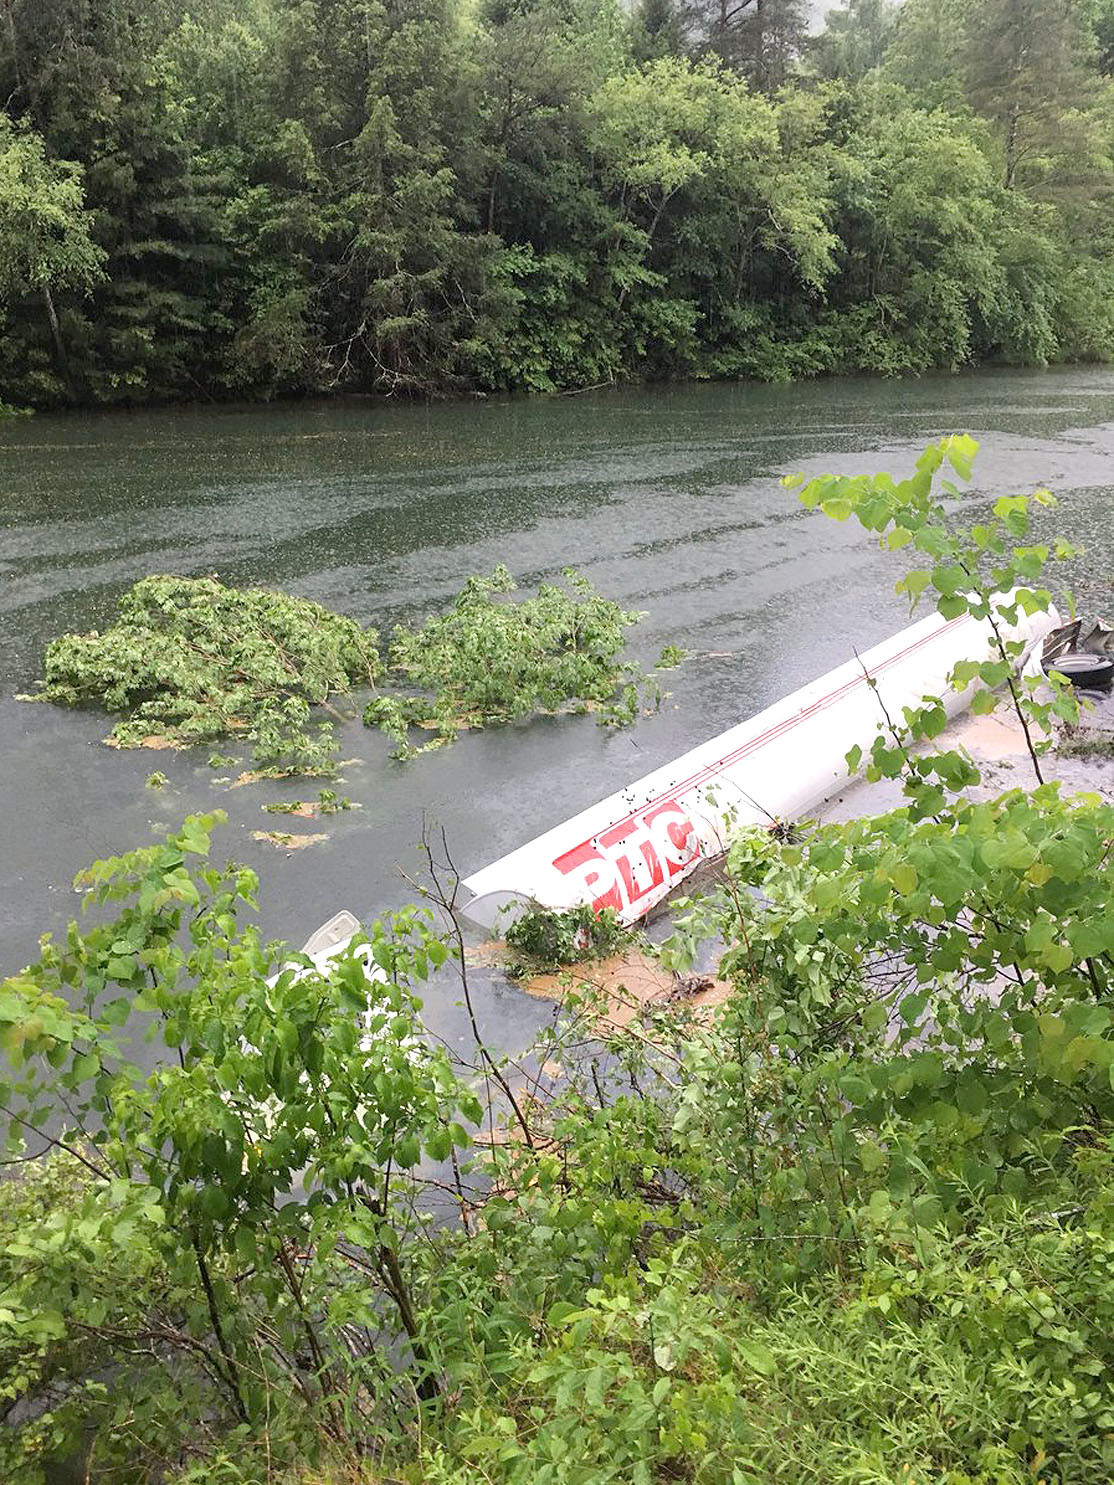 EMERGENCY RESPONDERS were busy overnight attempting to remove a tanker truck from the Ocoee River, along Highway 64. Highway traffic was still being detoured this morning, awaiting removal of the truck from the river and cleanup of several hundred gallons of fuel. Photograph courtesy of Hamilton County HazMat team.